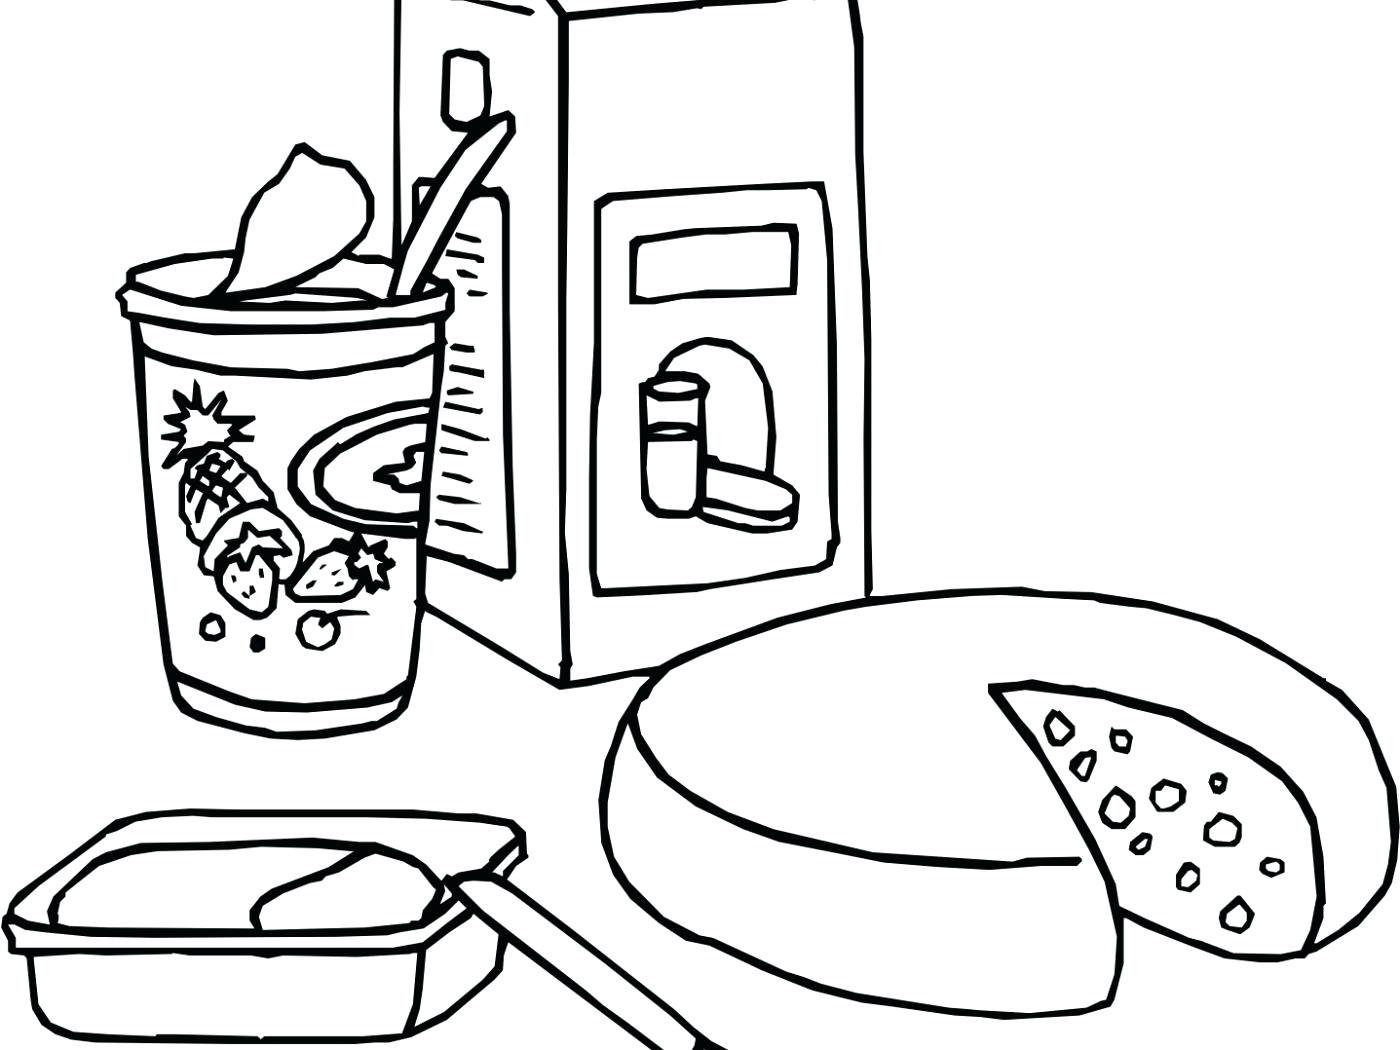 Yogurt Coloring Pages To Print